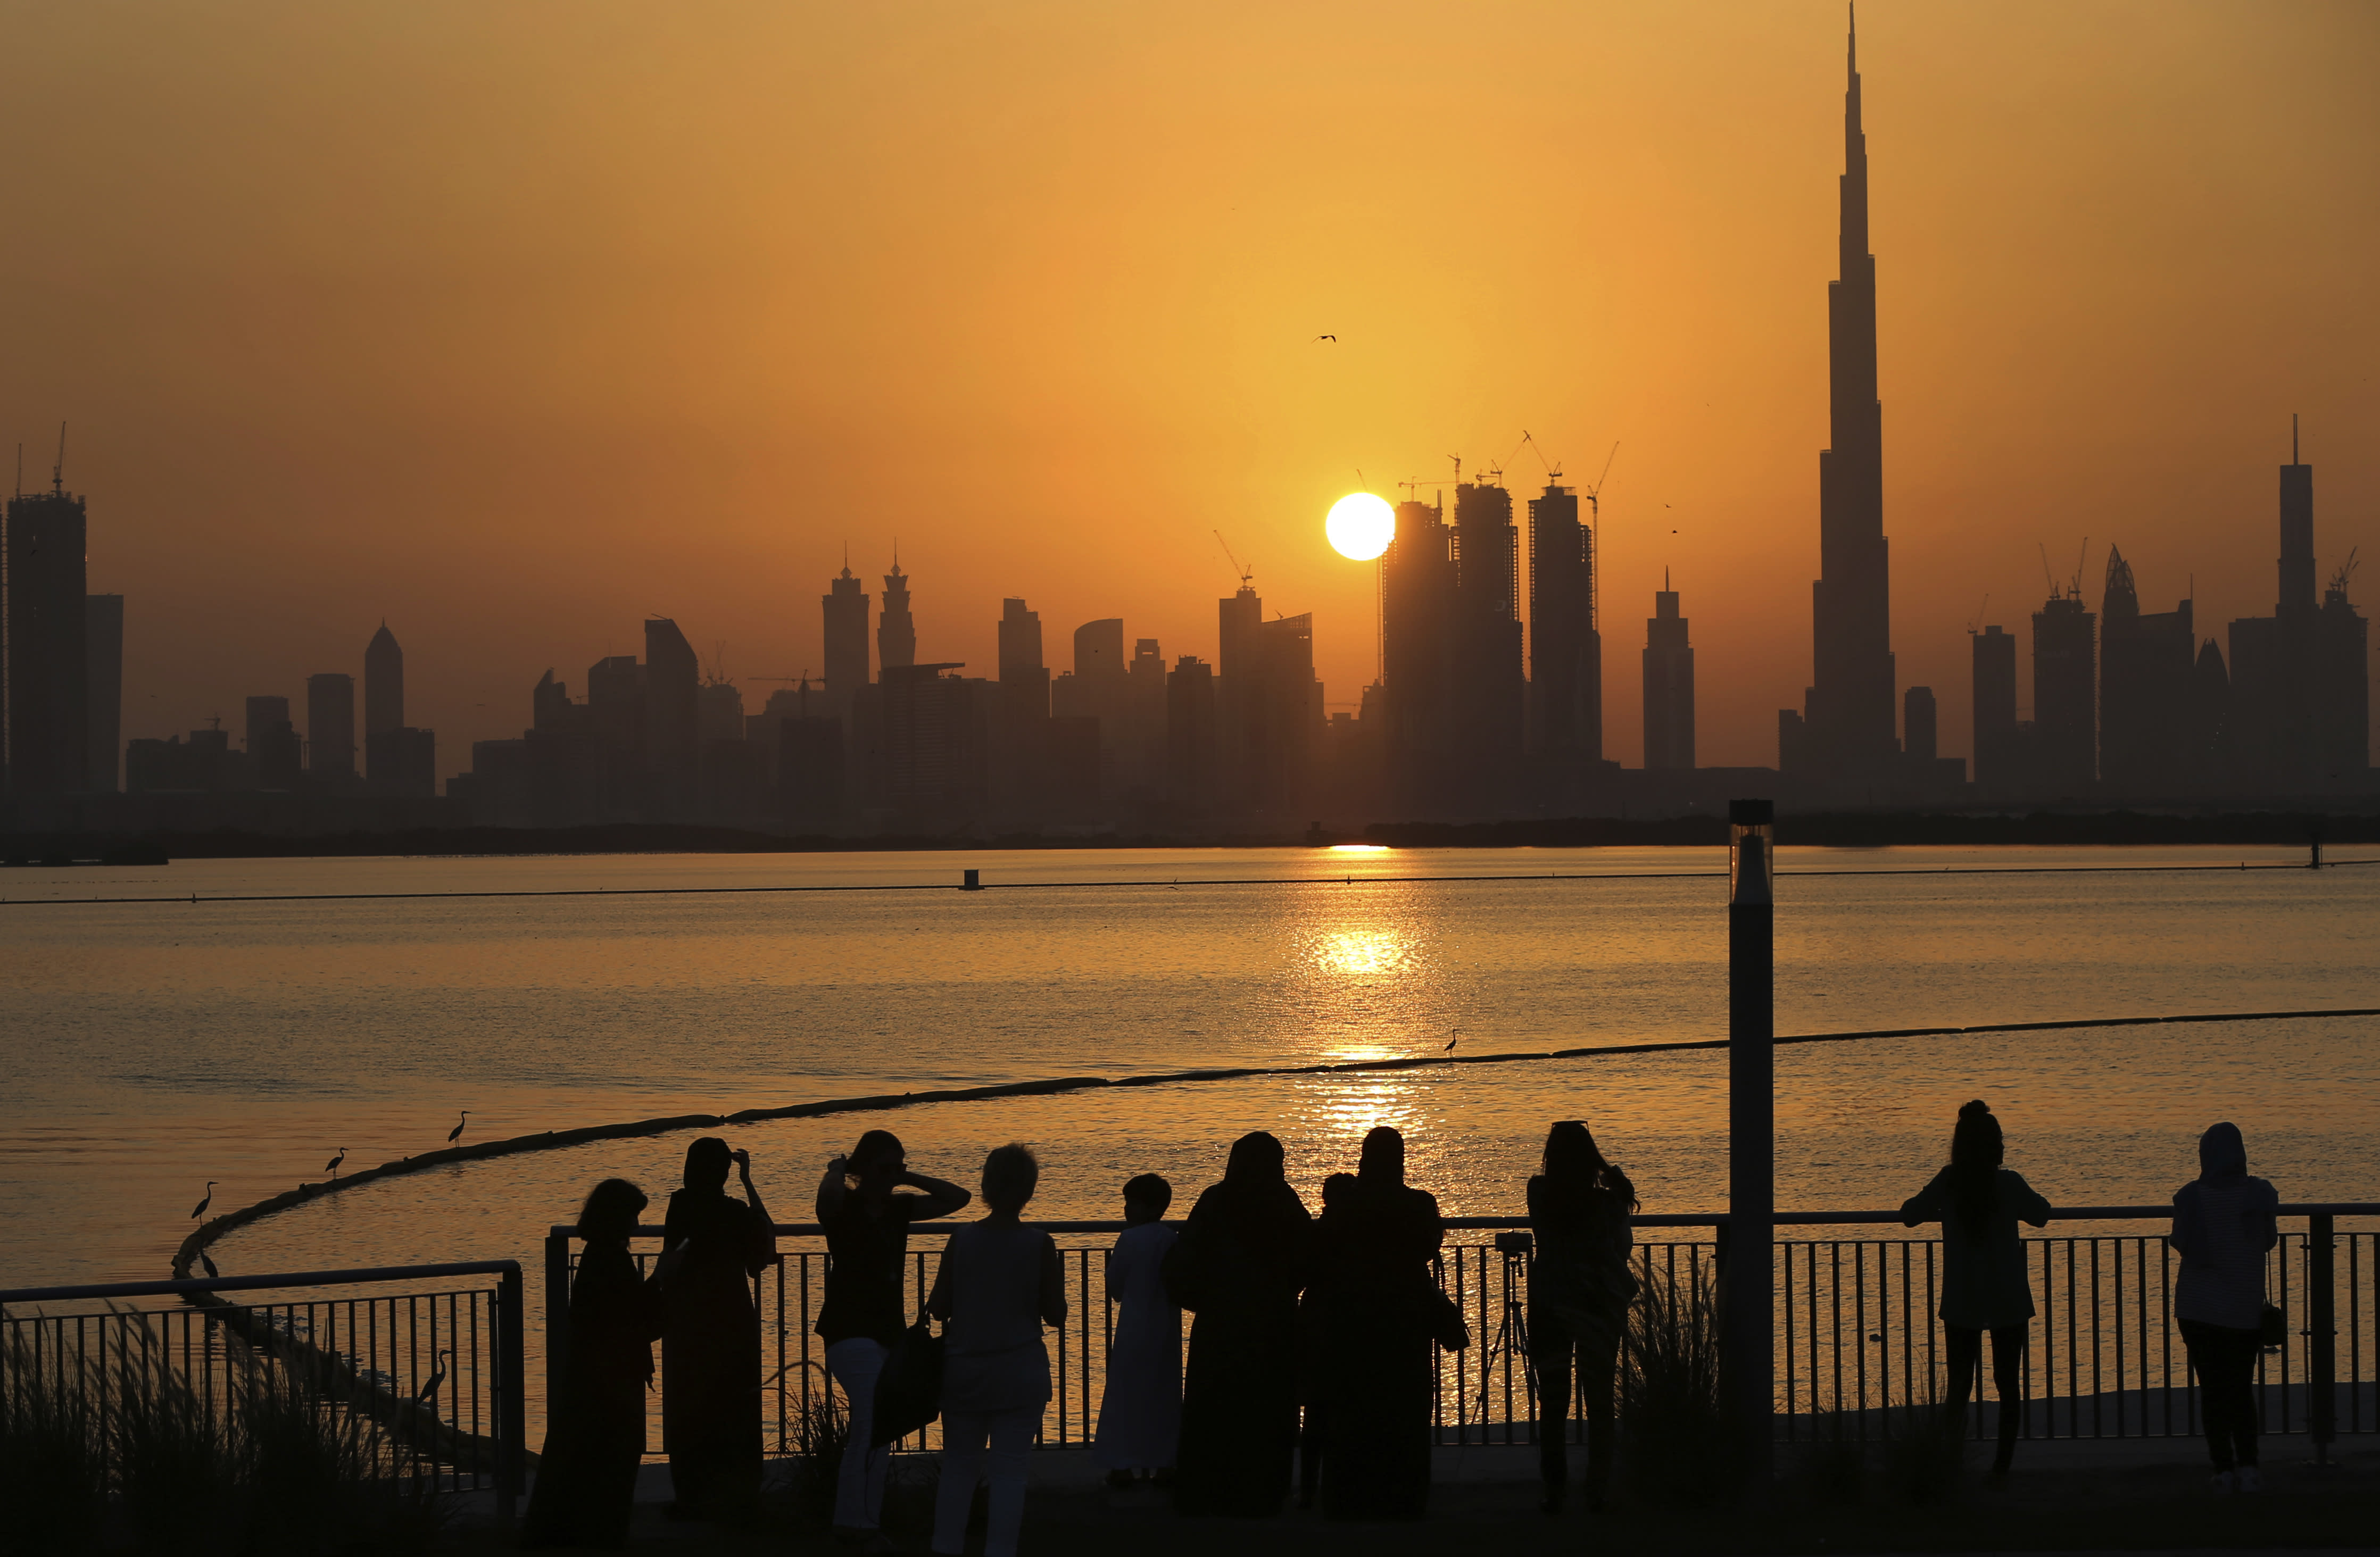 """In this Oct. 7, 2016 file photo, people watch the sunset over the skyline, with Burj Khalifa at right, in Dubai, United Arab Emirates. The United Arab Emirates announced on Saturday a major overhaul of the country's Islamic personal laws, allowing unmarried couples to cohabitate, loosening alcohol restrictions and criminalizing so-called """"honor killings."""" (AP Photo/Kamran Jebreili, File)"""